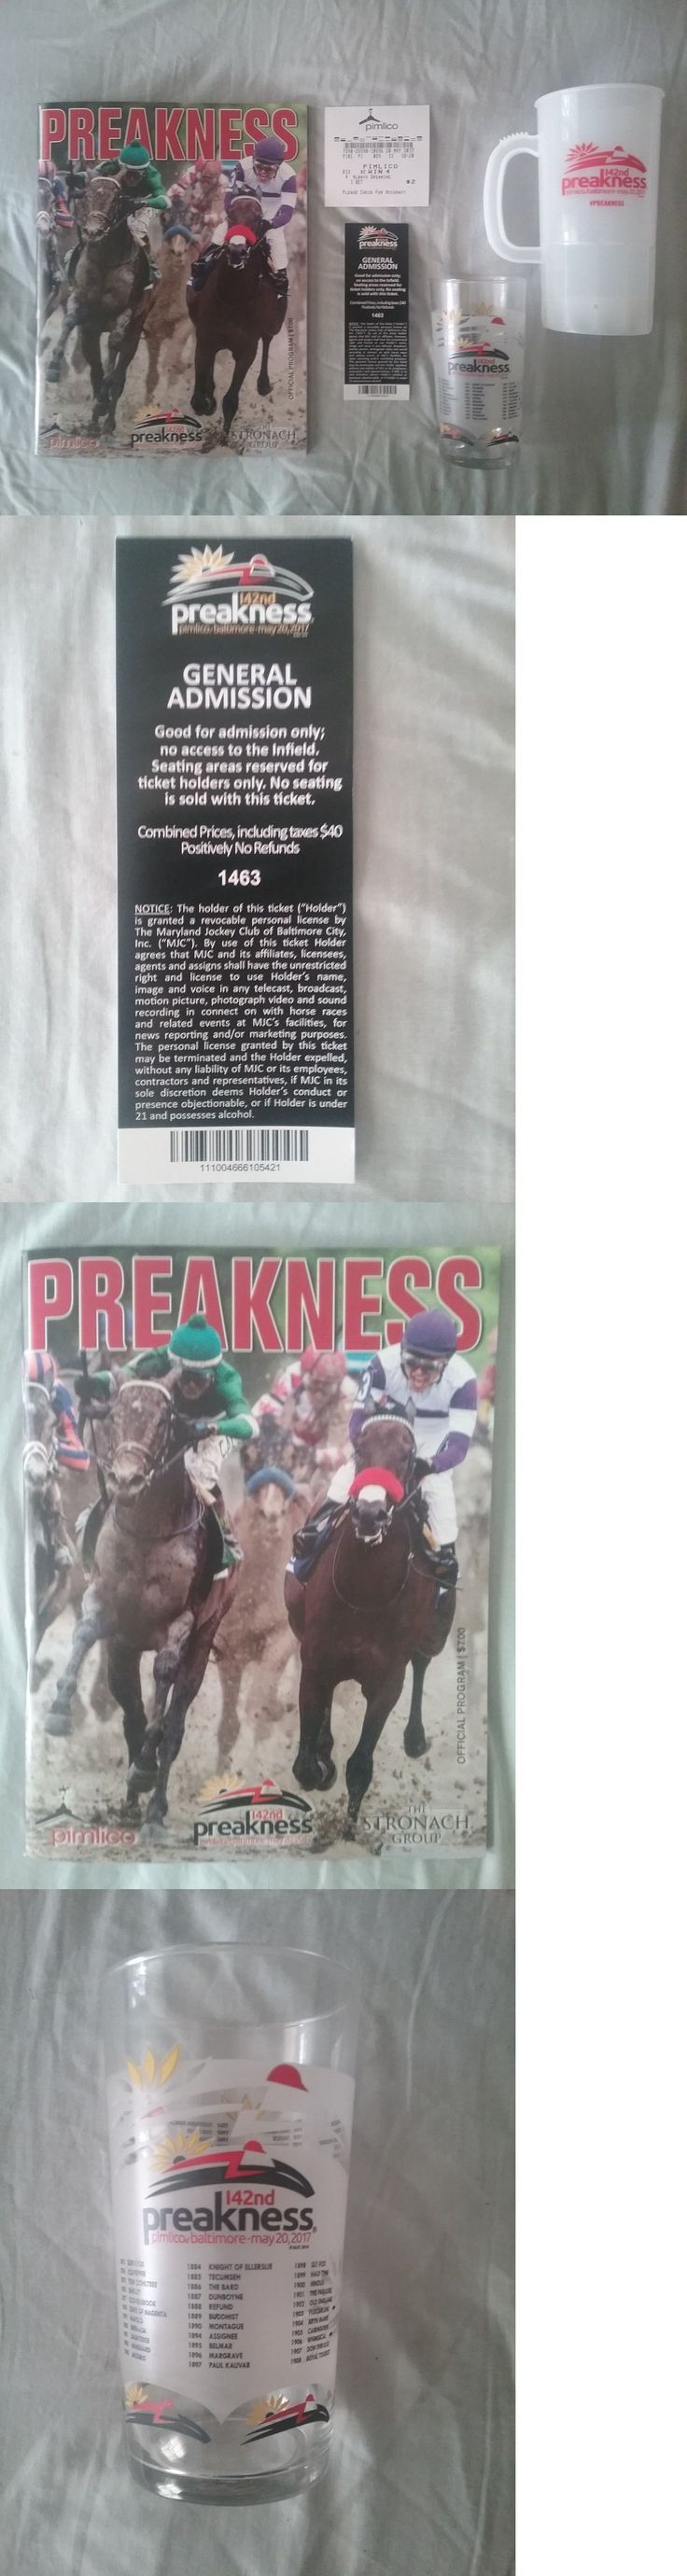 Horse Racing 429: 2017 Preakness Collection! Admission Ticket - Program - Glass - Cup - Win Ticket -> BUY IT NOW ONLY: $59.95 on eBay!